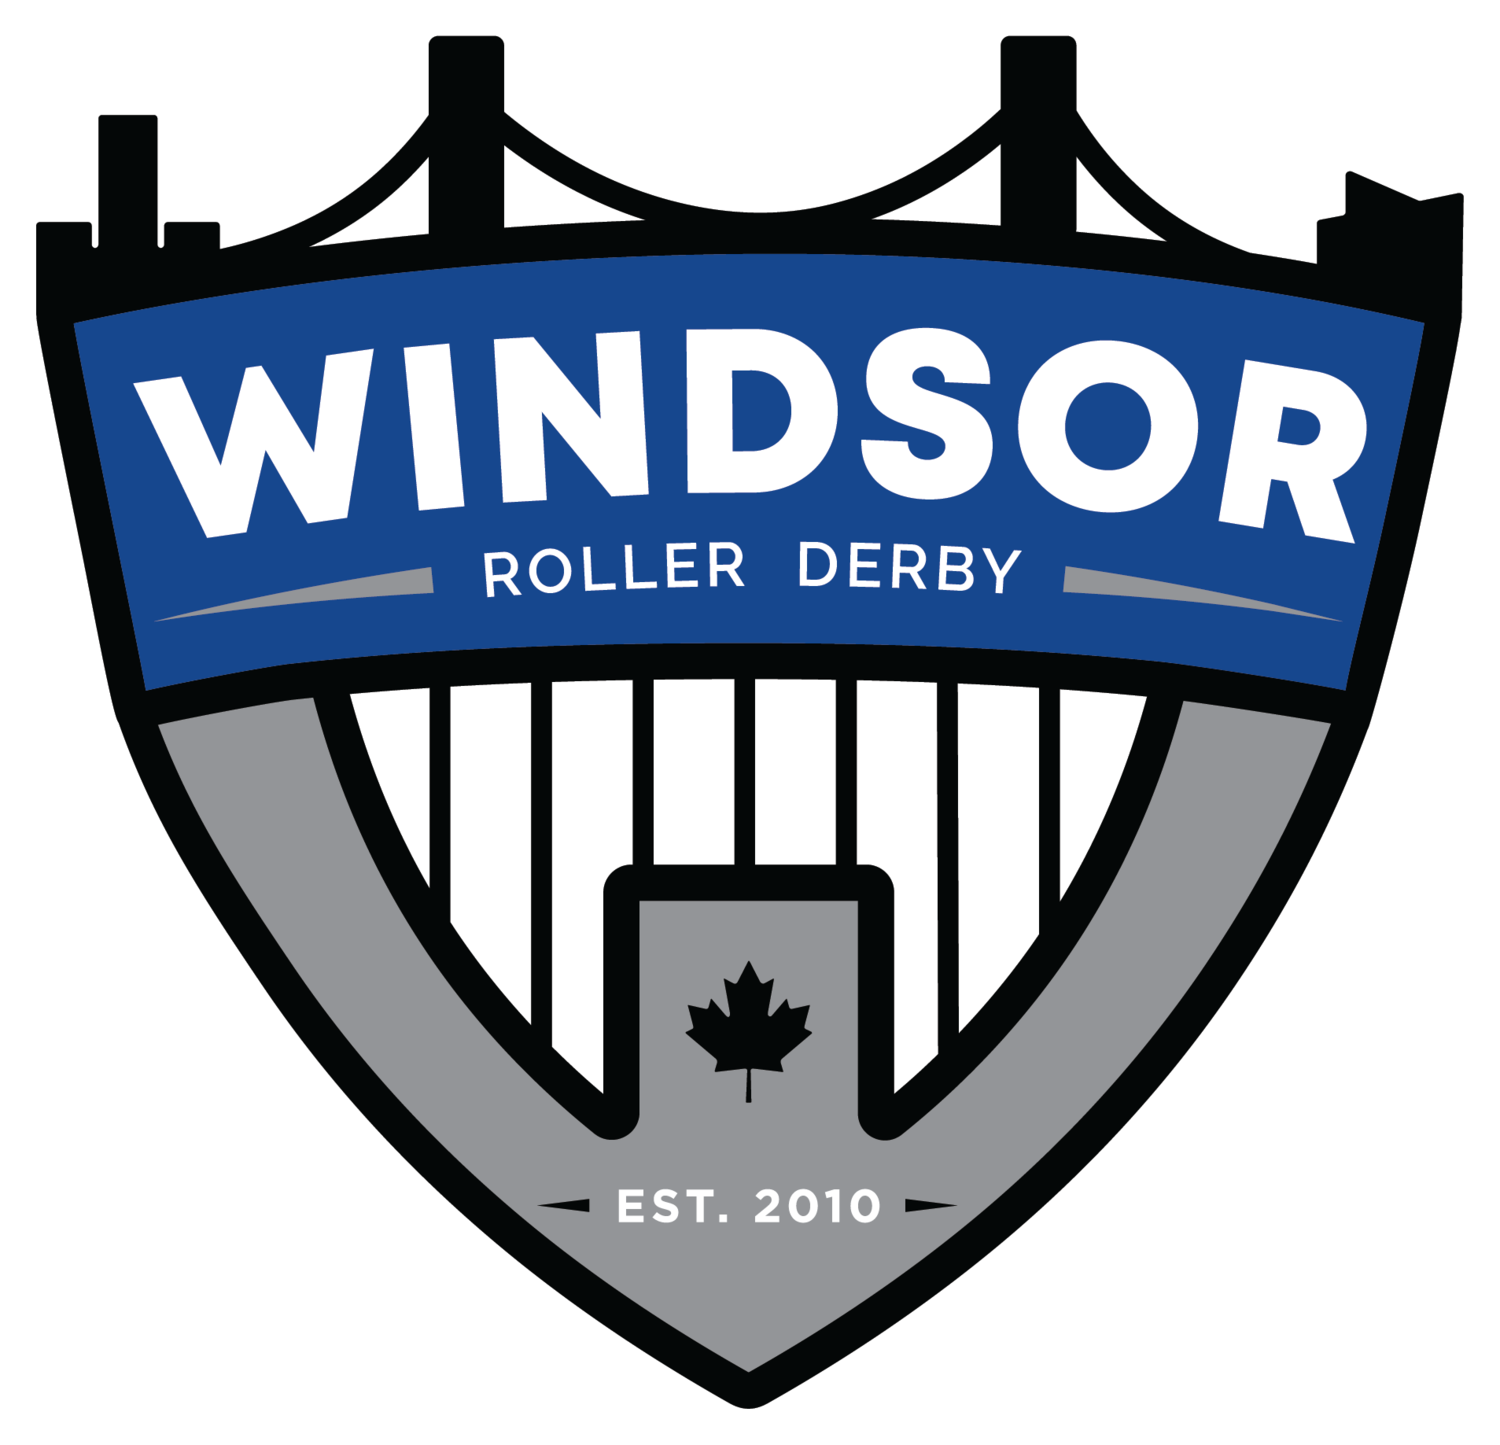 Windsor Roller Derby